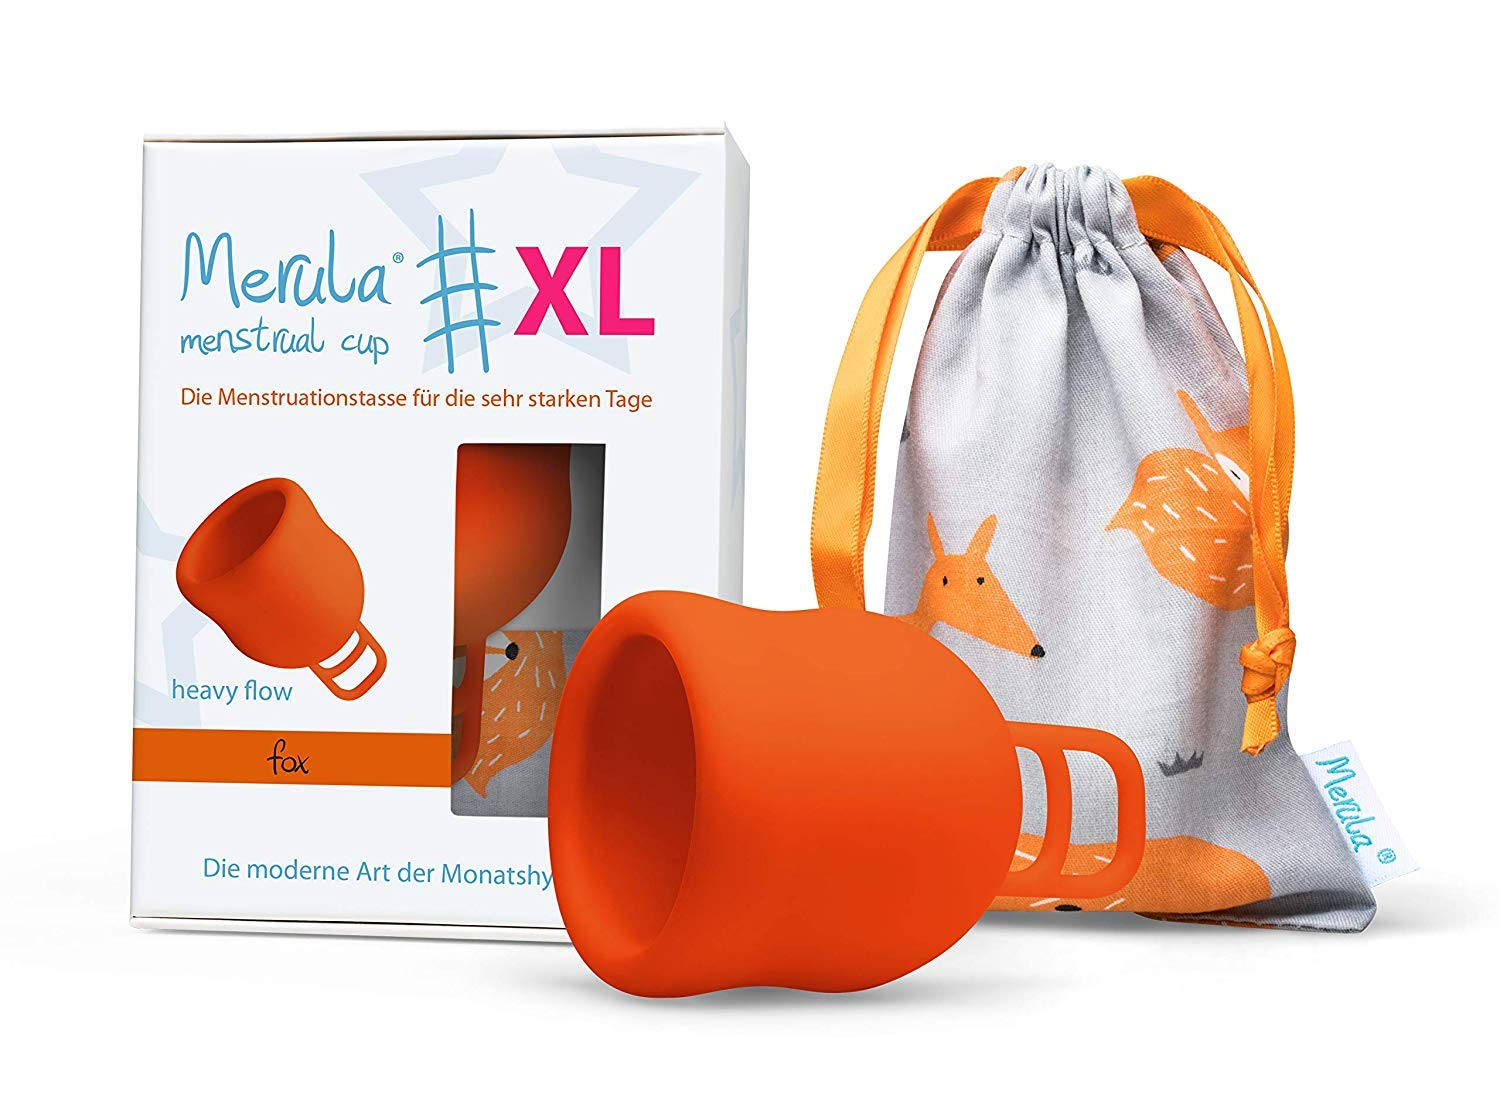 Merula Cup XL – The Menstrual Cup for The Very Strong Days